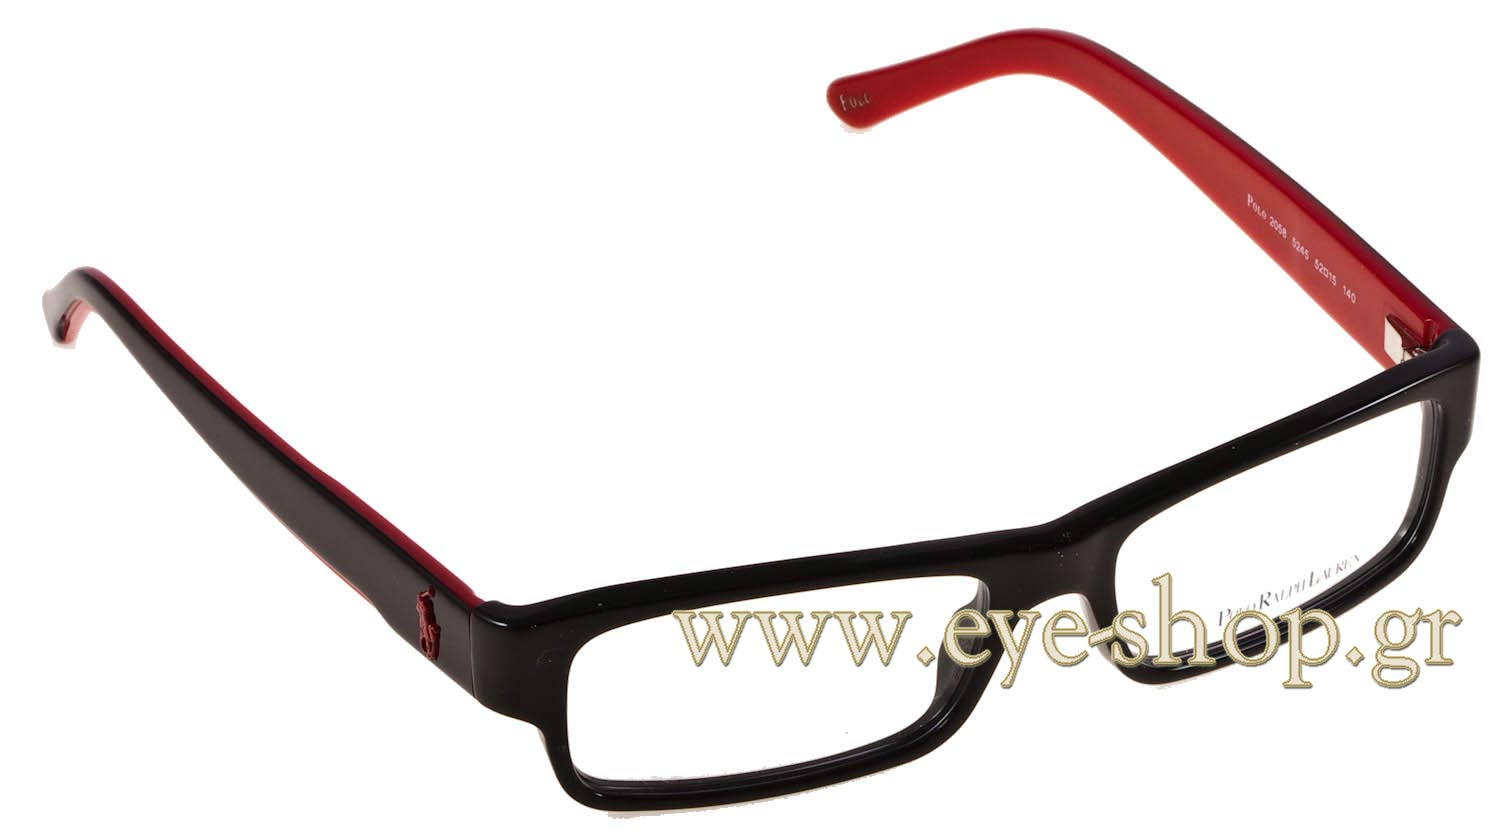 Polo Eyeglass Frame Parts : Eyewear Polo Ralph Lauren 2058 5245 Men Eye-Shop